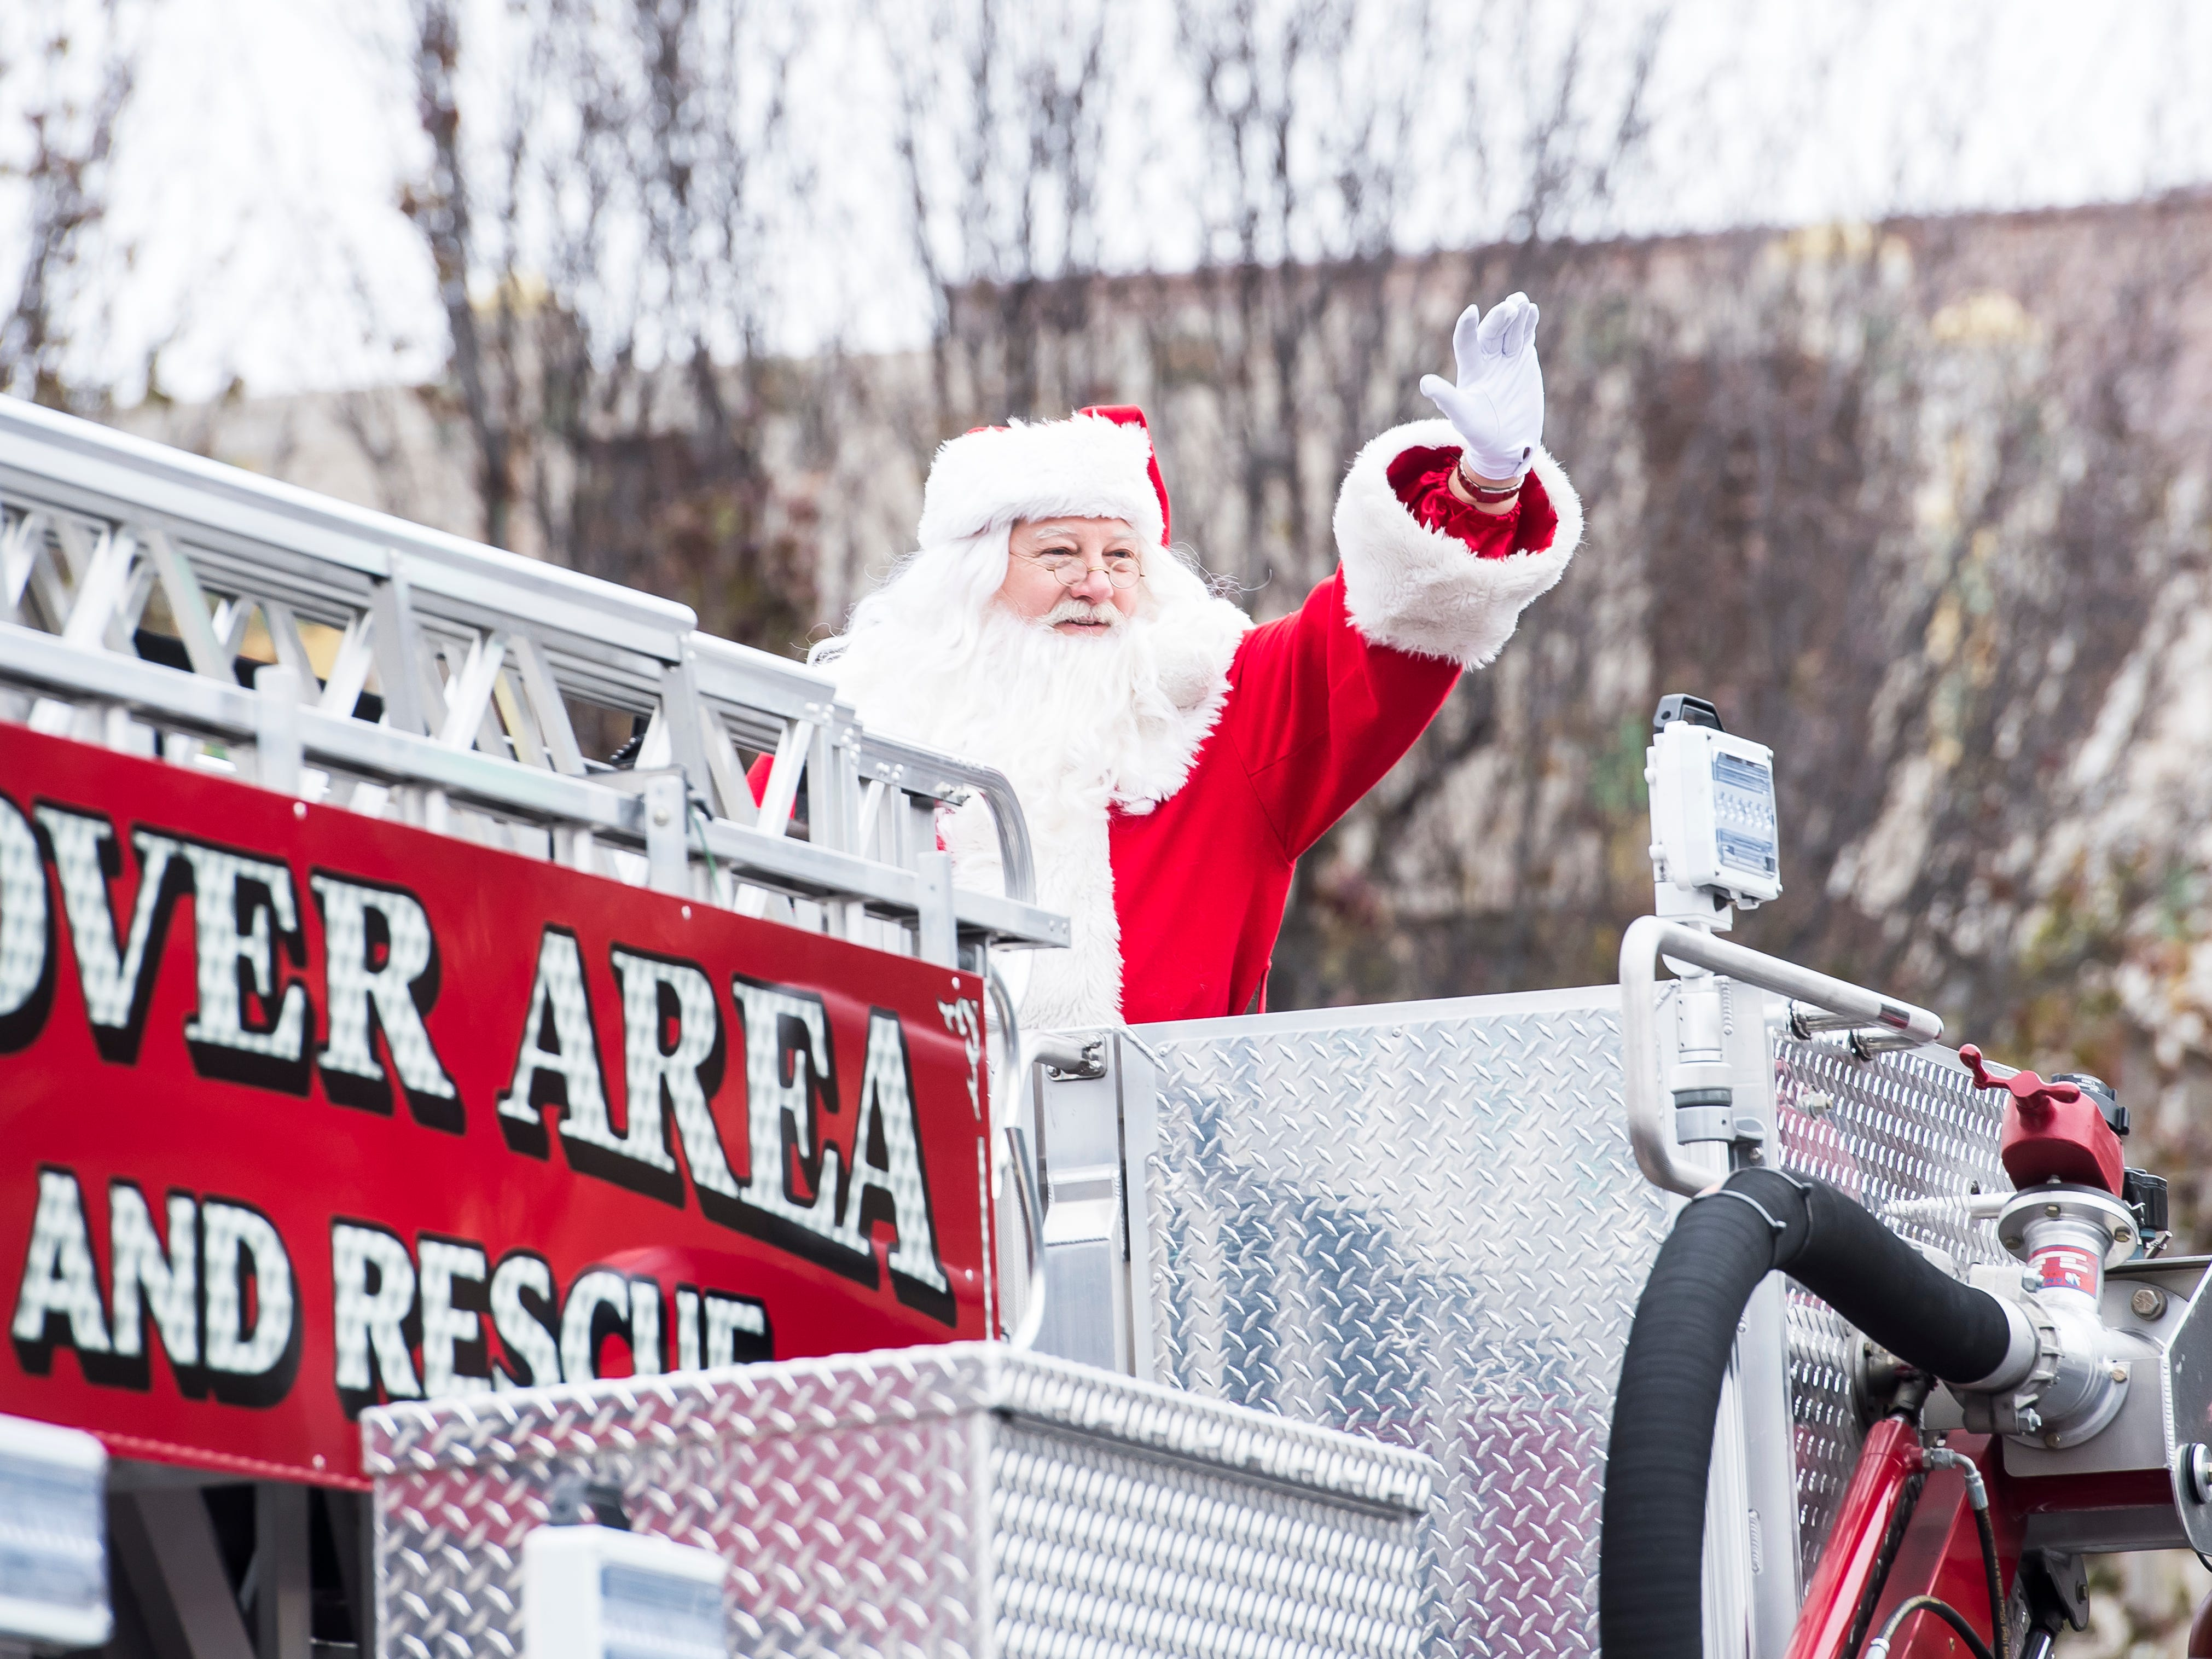 Santa waves to the crowd while riding in the bucket of a Hanover Area Fire and Rescue ladder truck in the Hanover Christmas parade on Friday, November, 23, 2018.